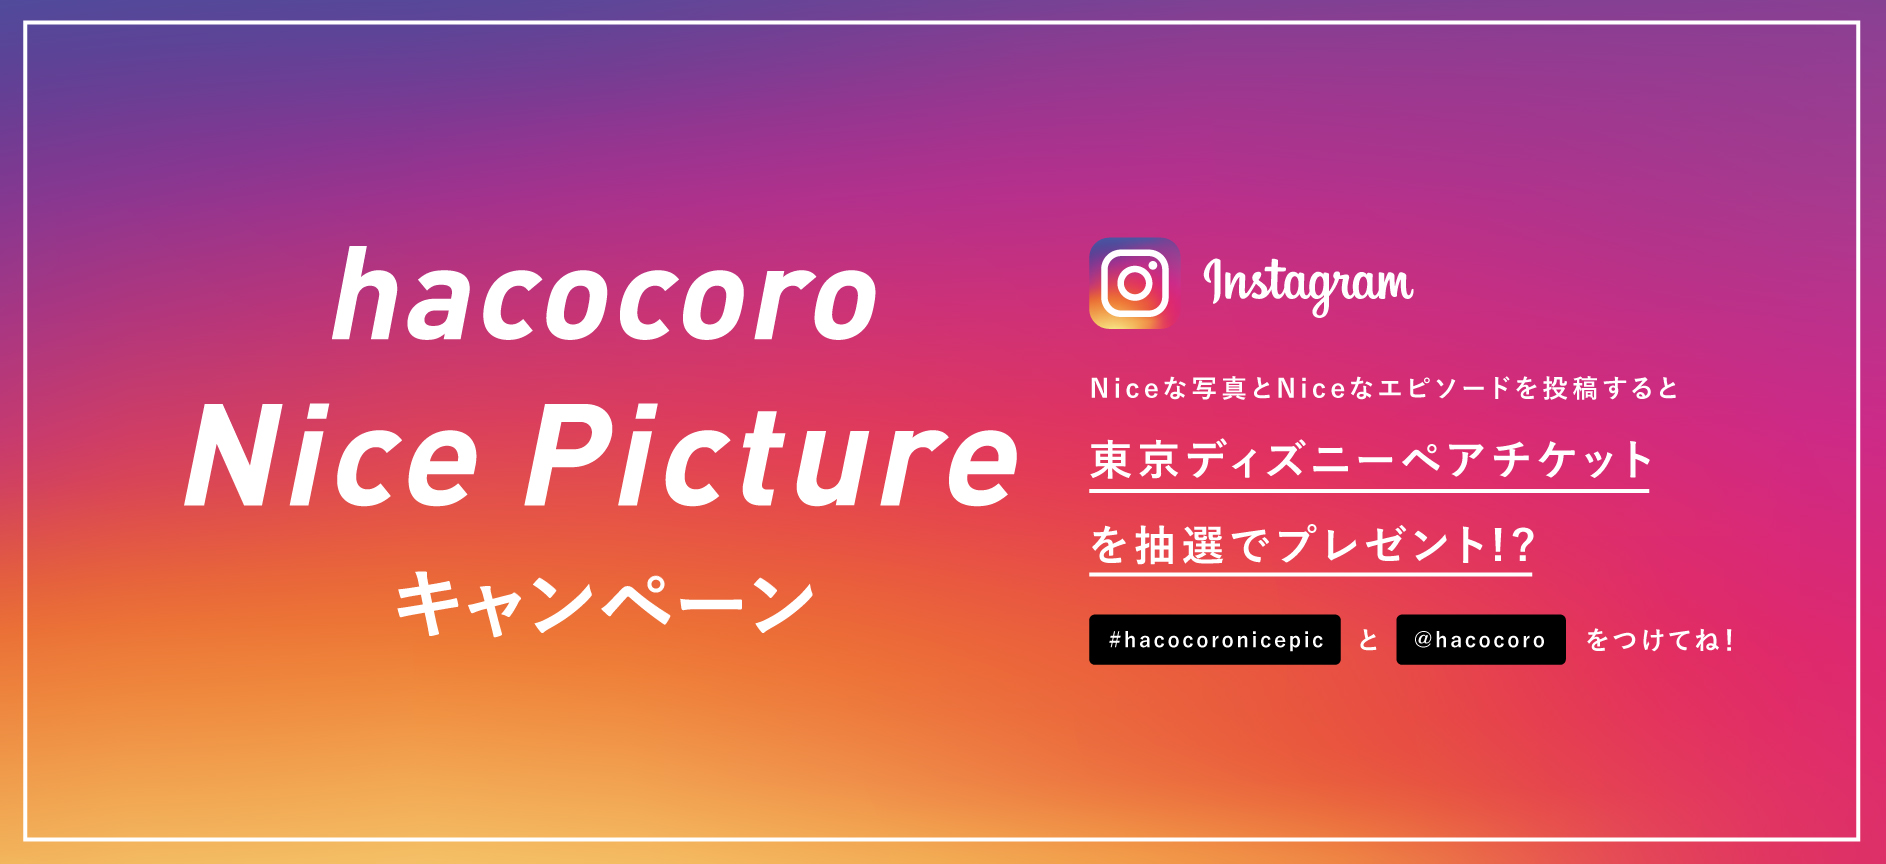 hacocoro Nice Picture キャンペーン